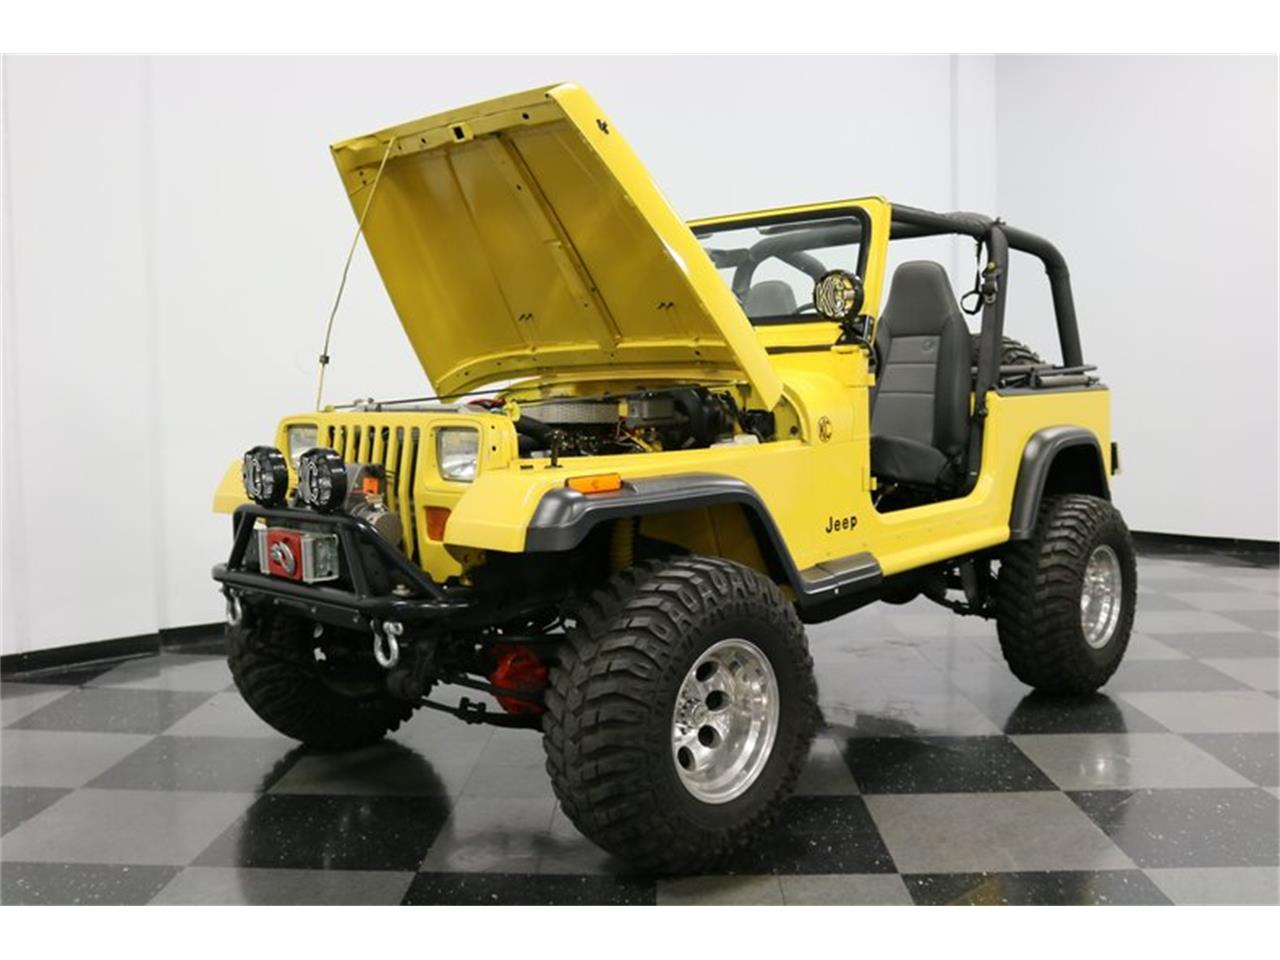 Large Picture of 1993 Jeep Wrangler - $21,995.00 Offered by Streetside Classics - Dallas / Fort Worth - P701